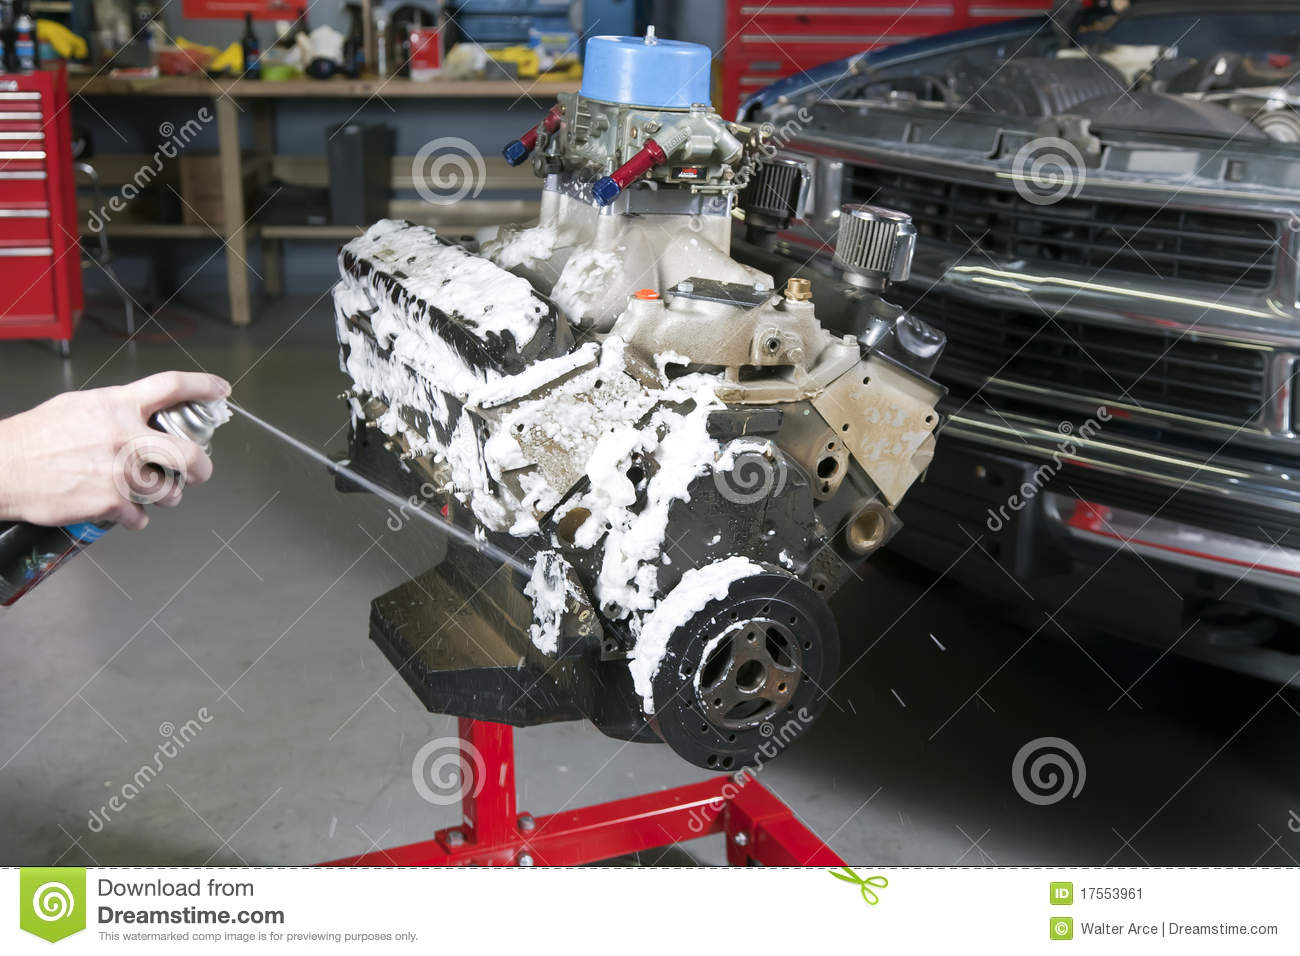 How To Clean Carburetor >> Engine Cleaner stock image. Image of mechanical, powerplant - 17553961